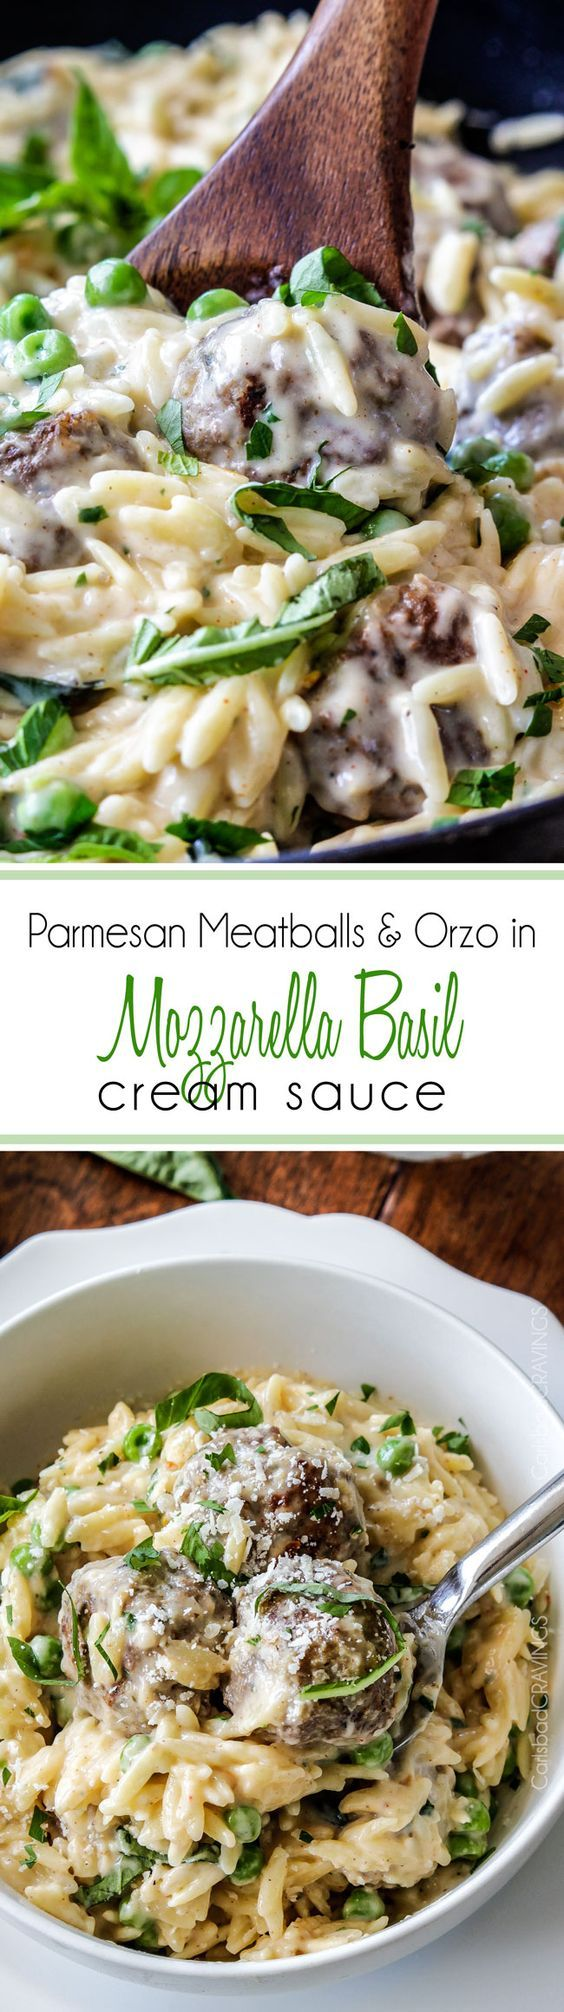 Parmesan Meatballs and Orzo in Mozzarella Basil Cream Sauce (lightened up) - crazy delicious creamy cheesy sauce coating juicy meatballs and tender orzo.  SO GOOD! I could eat this for days.